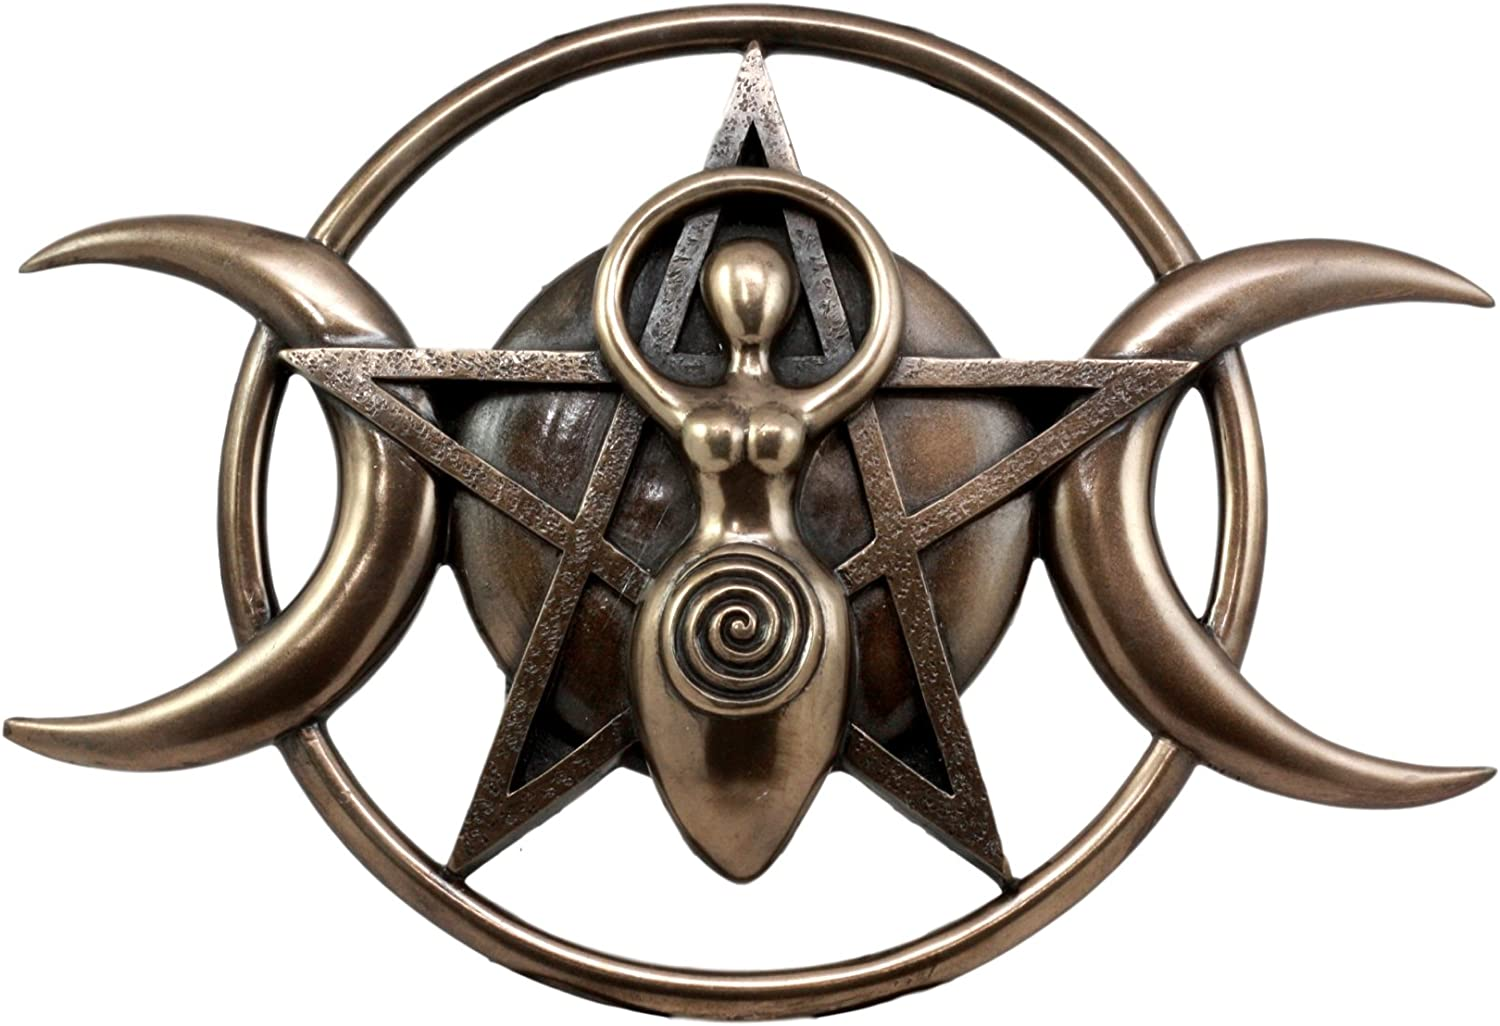 Ebros Neopagan Shaman Spiral Goddess Wall Decor Lunar Triple Goddess Wicca Wall Plaque Figurine Holy Trinity Wiccan Abstract 3D Art Sculpture